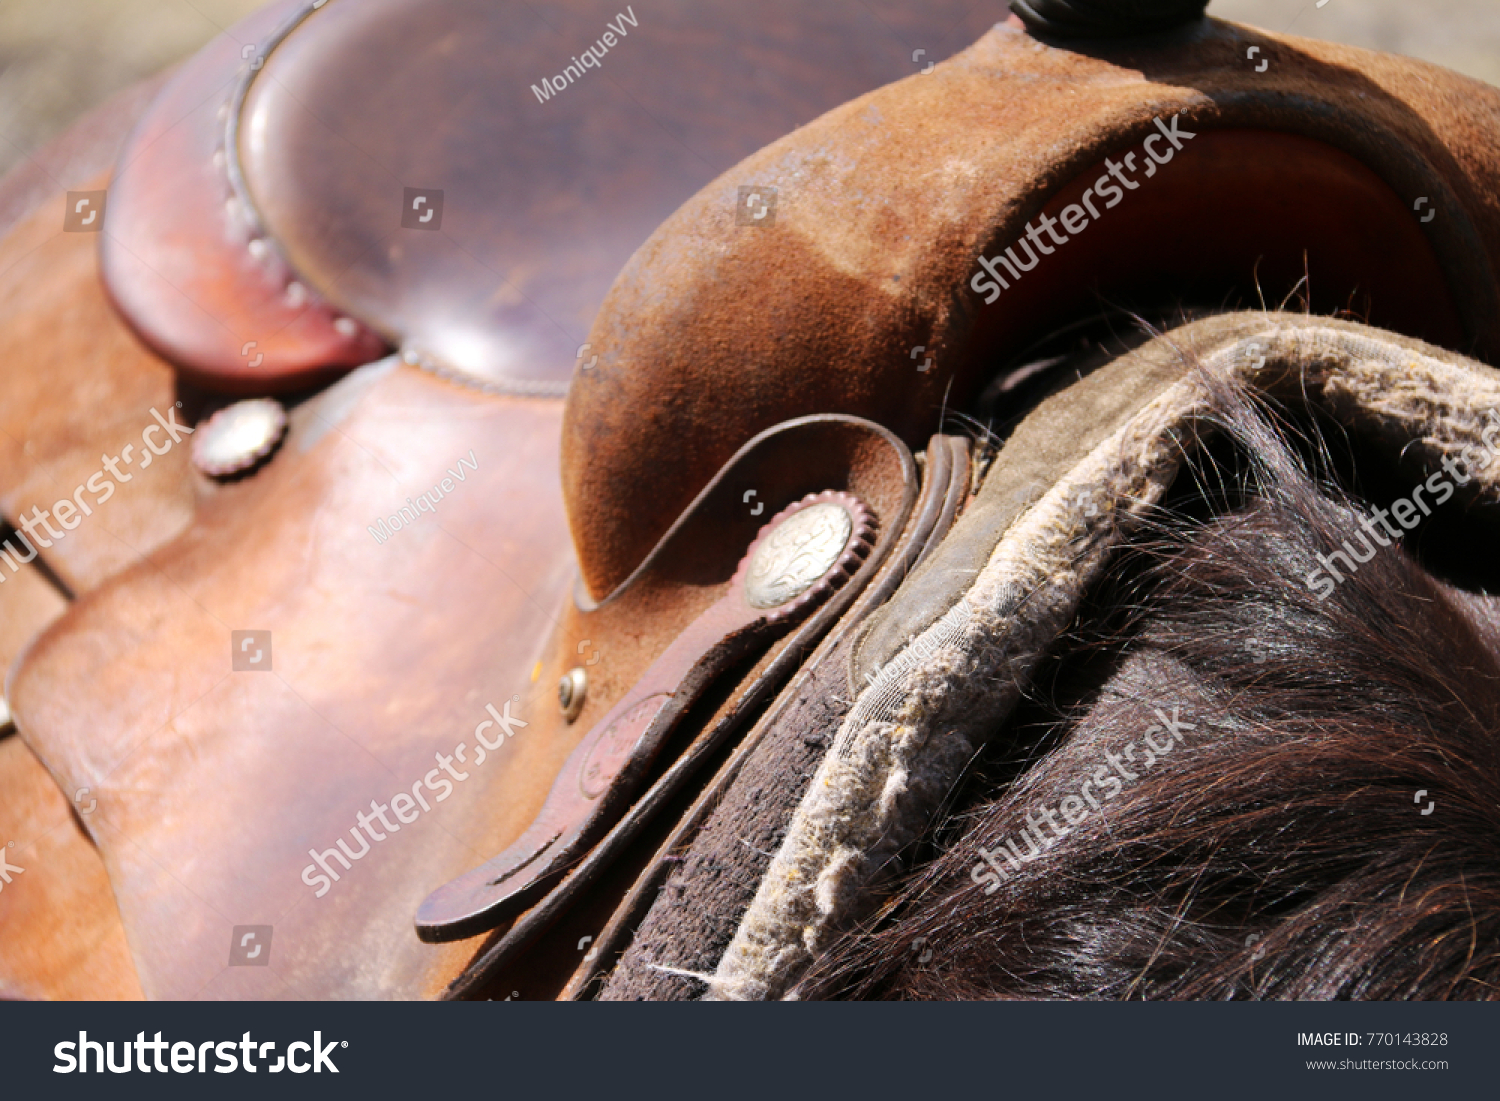 Close Brown Leather Western Saddle On Stock Photo Edit Now 770143828